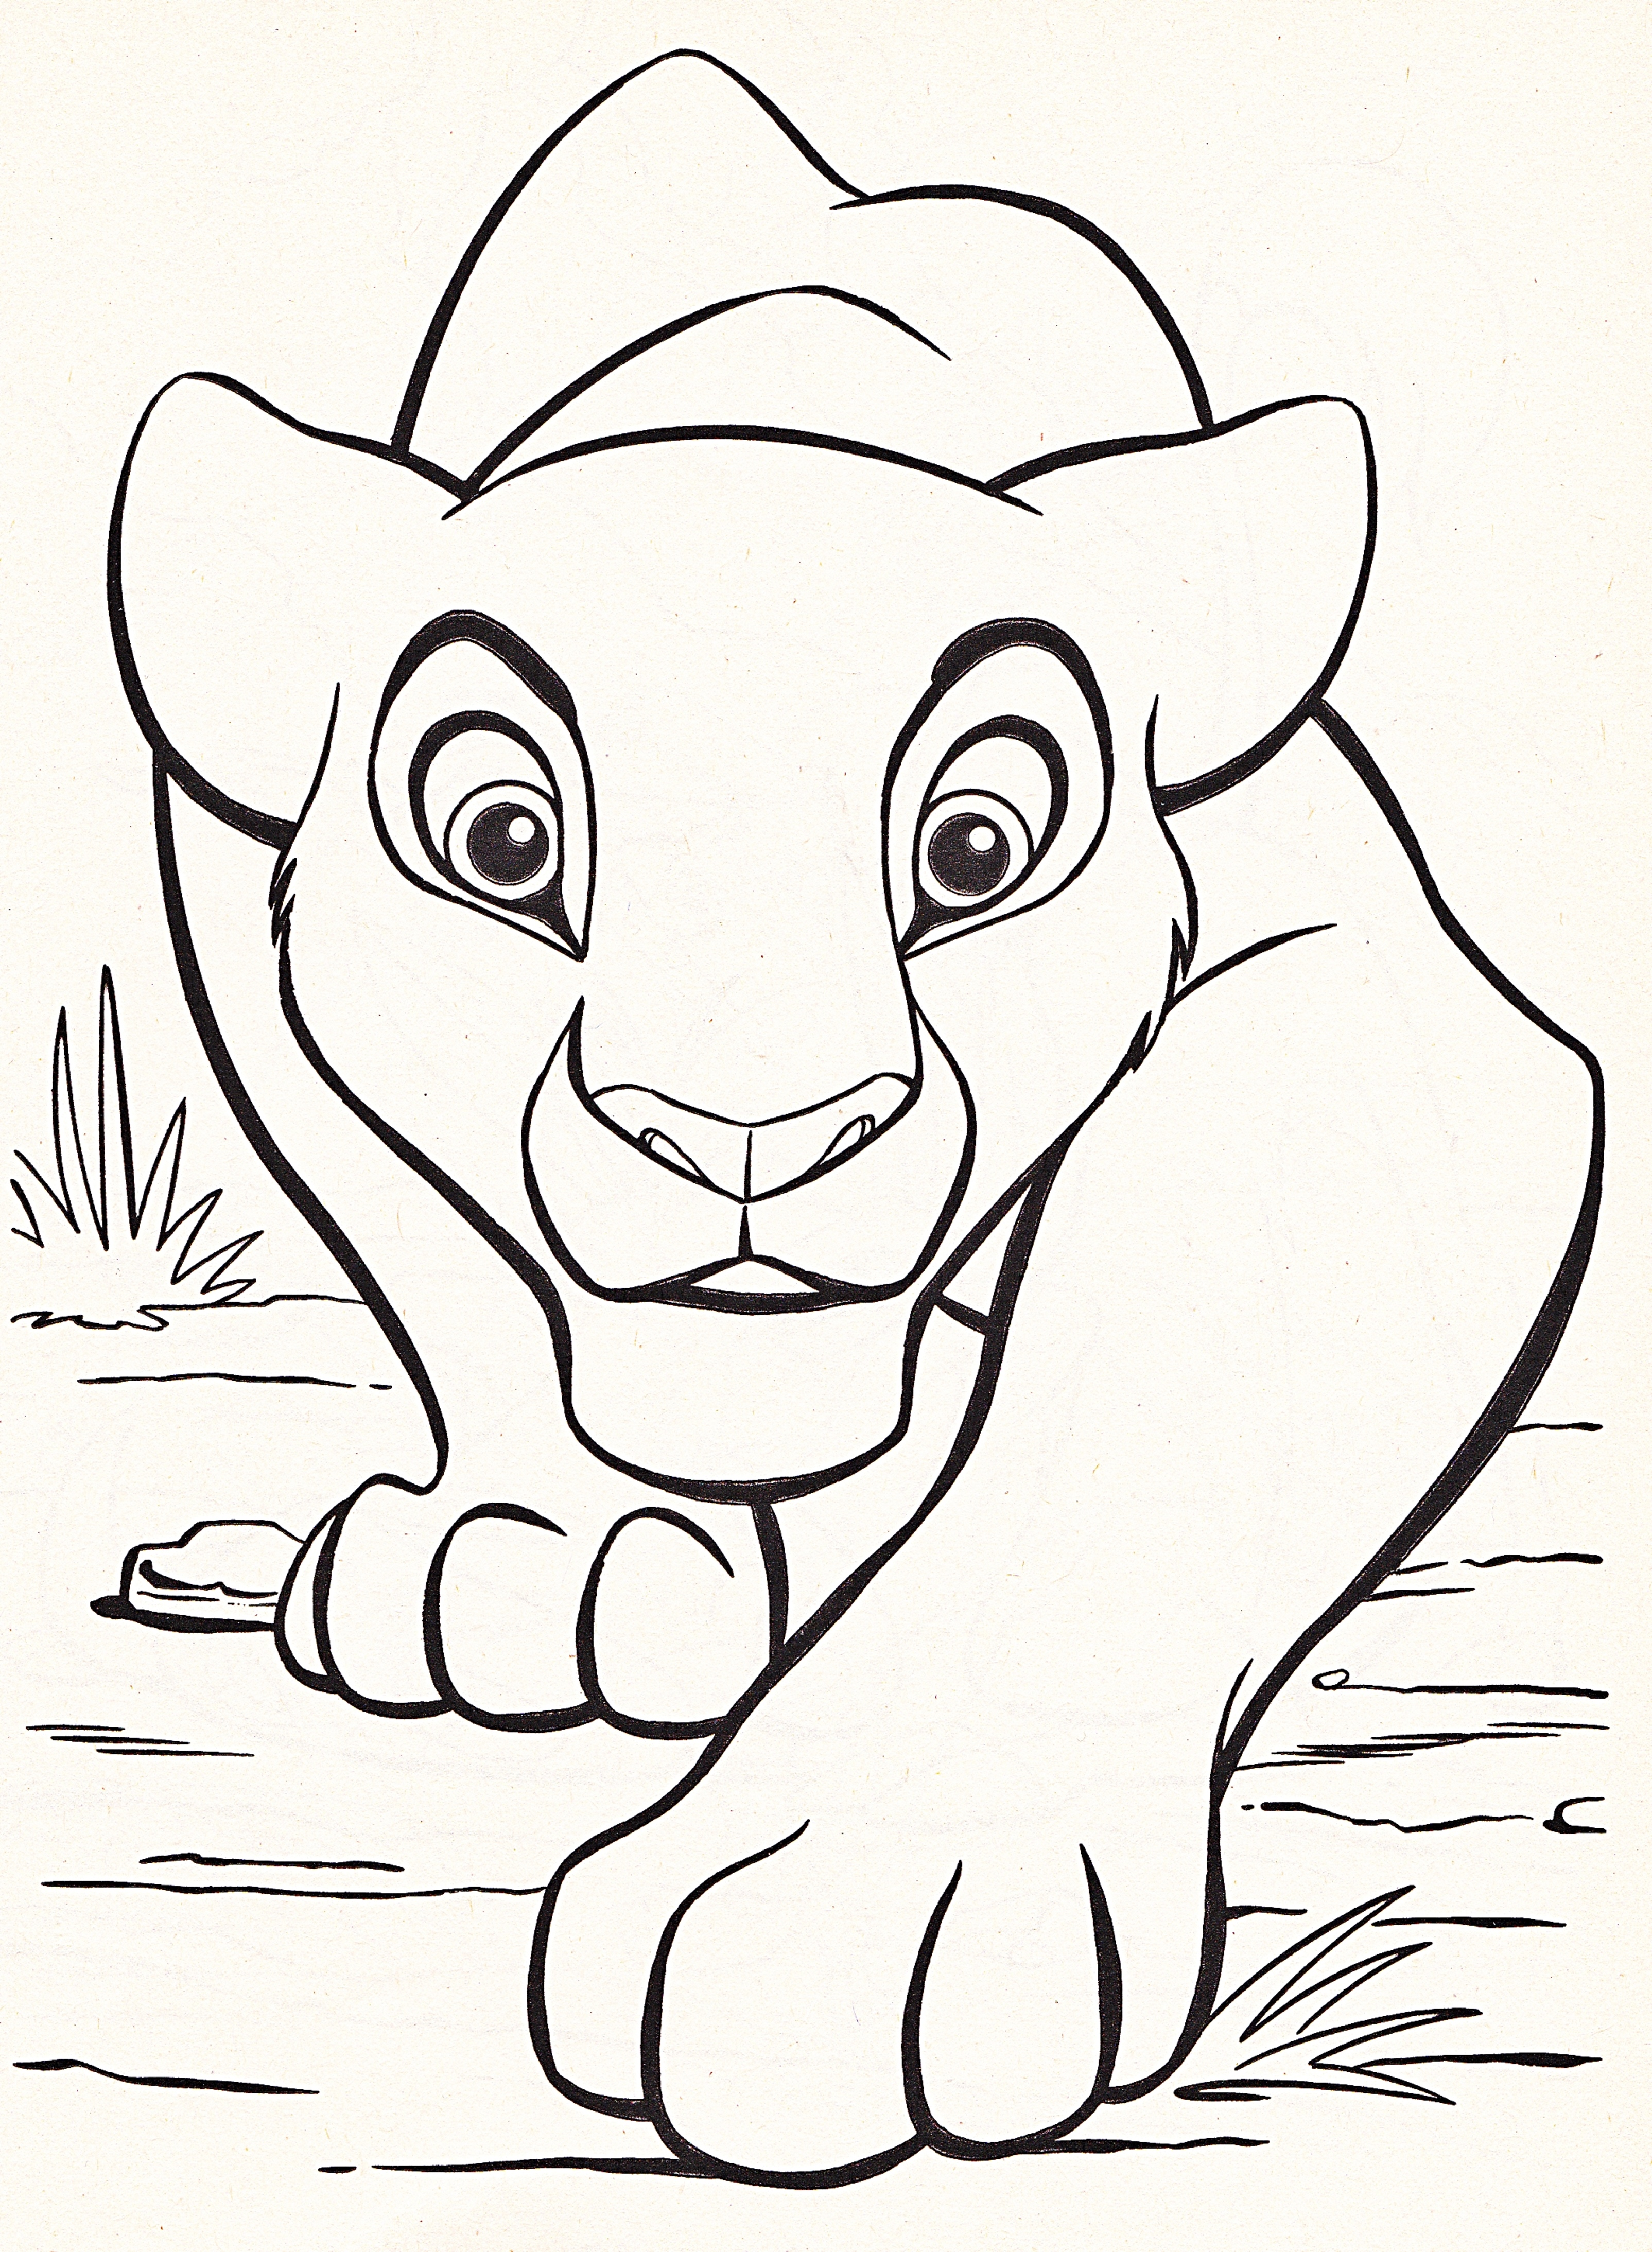 [LARGE] Disney Coloring Pages 01